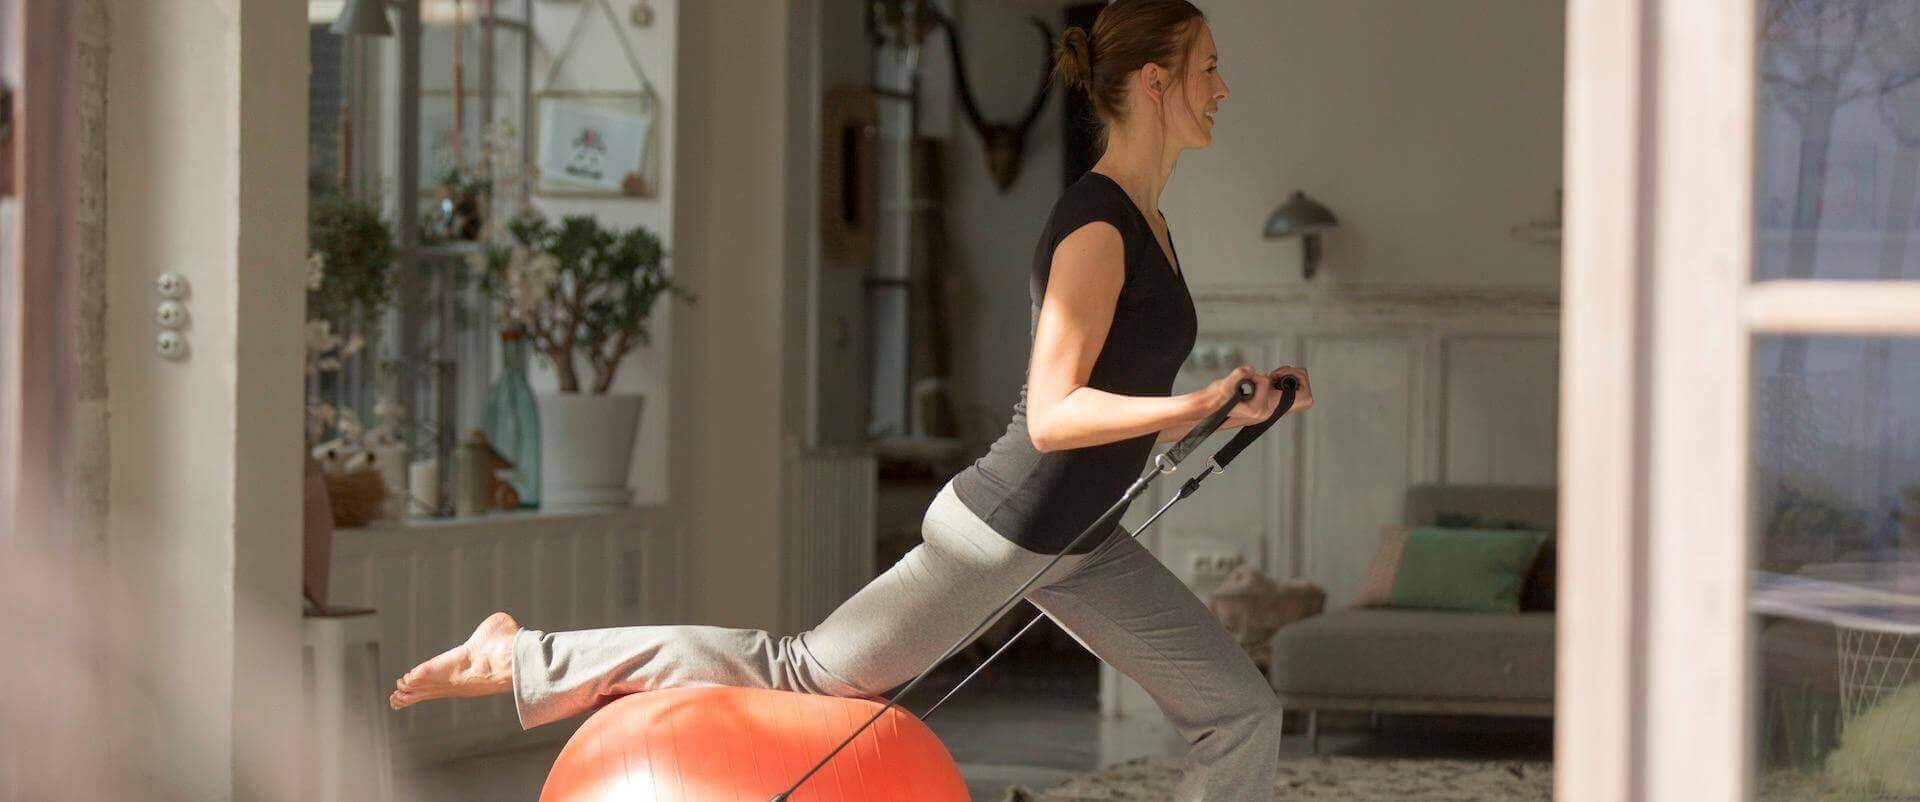 Pilates: Why is it Effective?